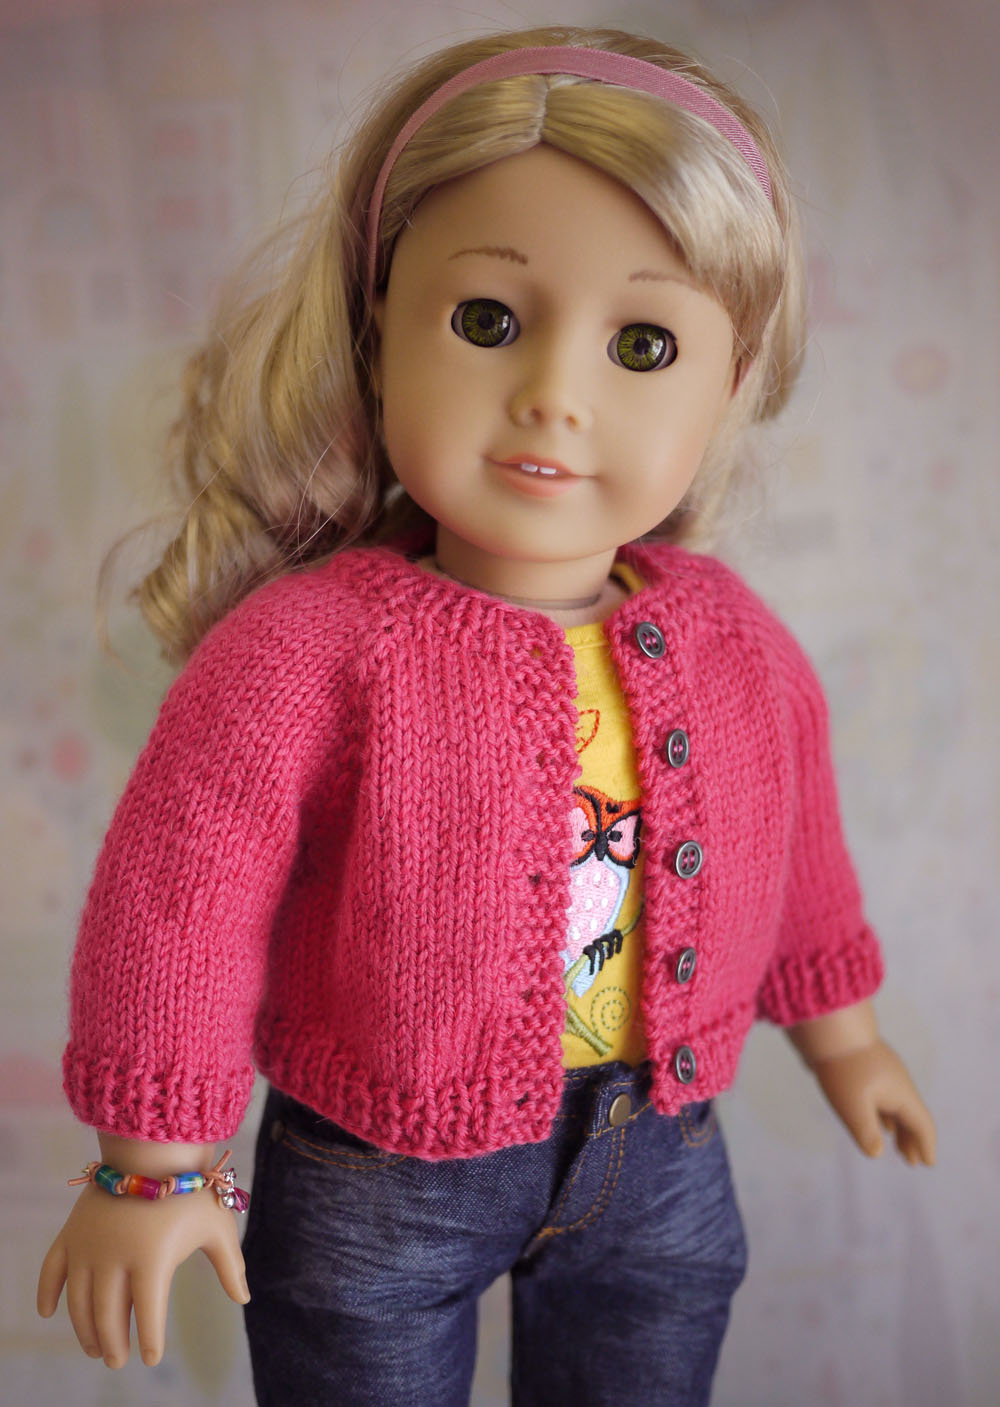 Free Knitting Patterns For 18 Dolls : American Girl Dolls Cindy Rice Designs